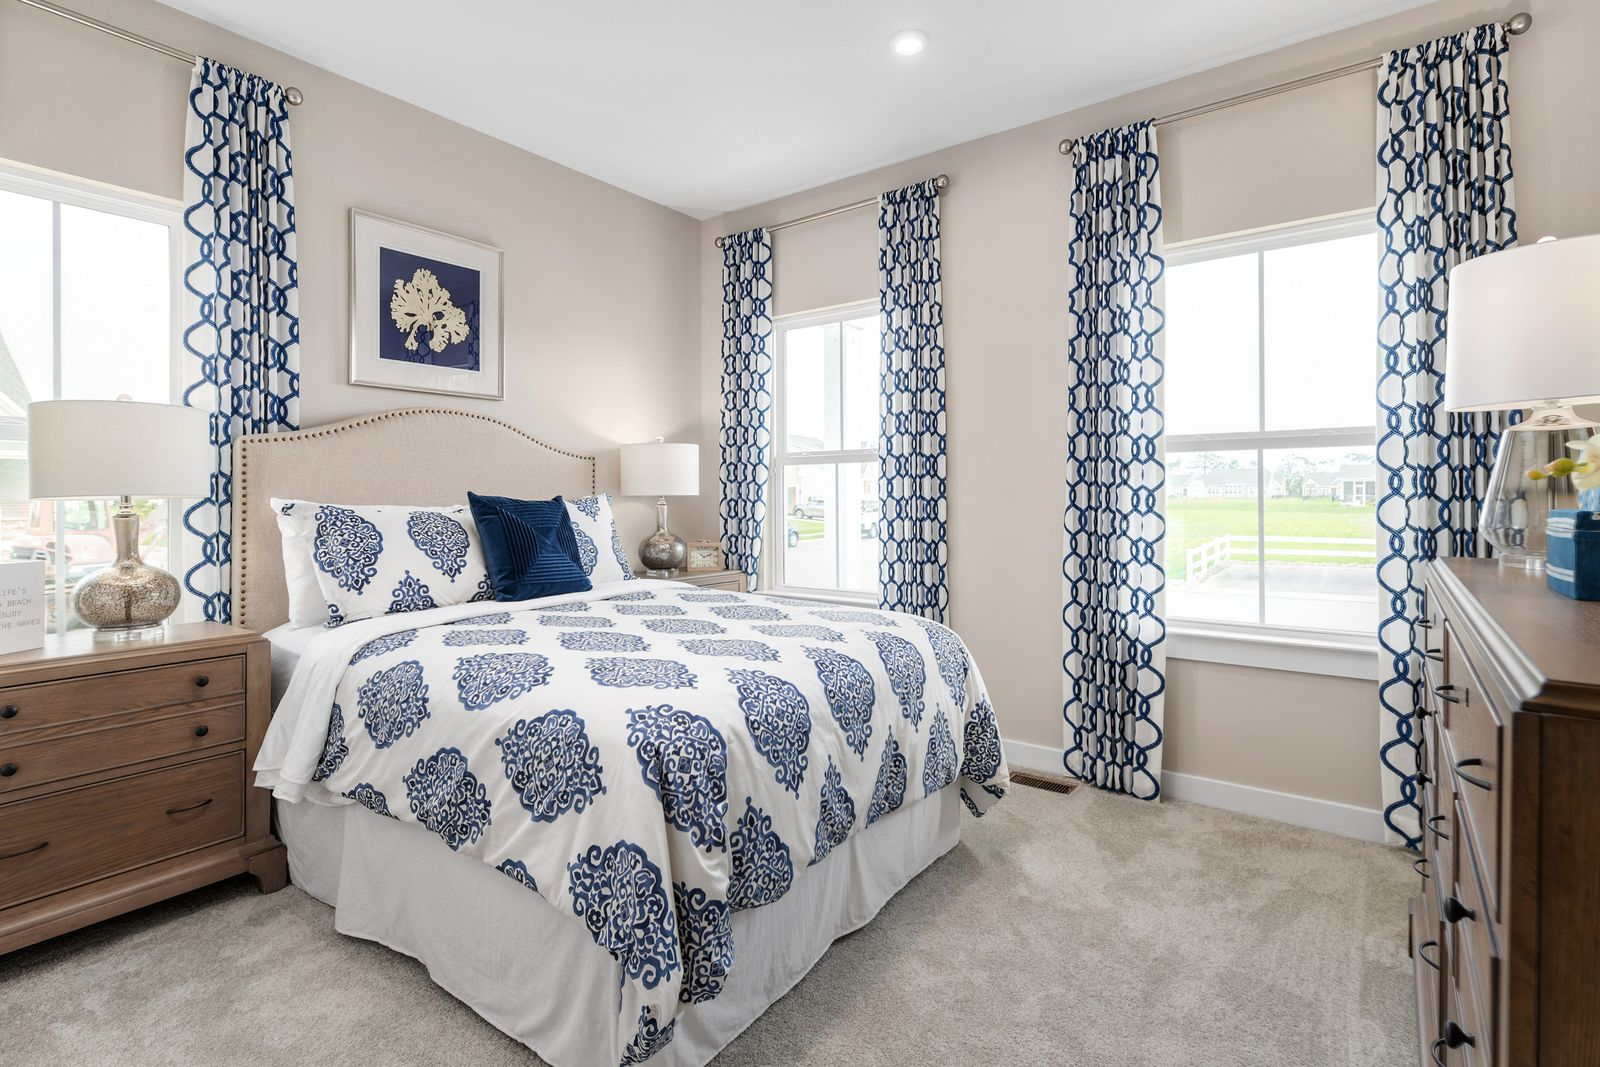 Bedroom featured in the Cumberland By Ryan Homes in Outer Banks, NC